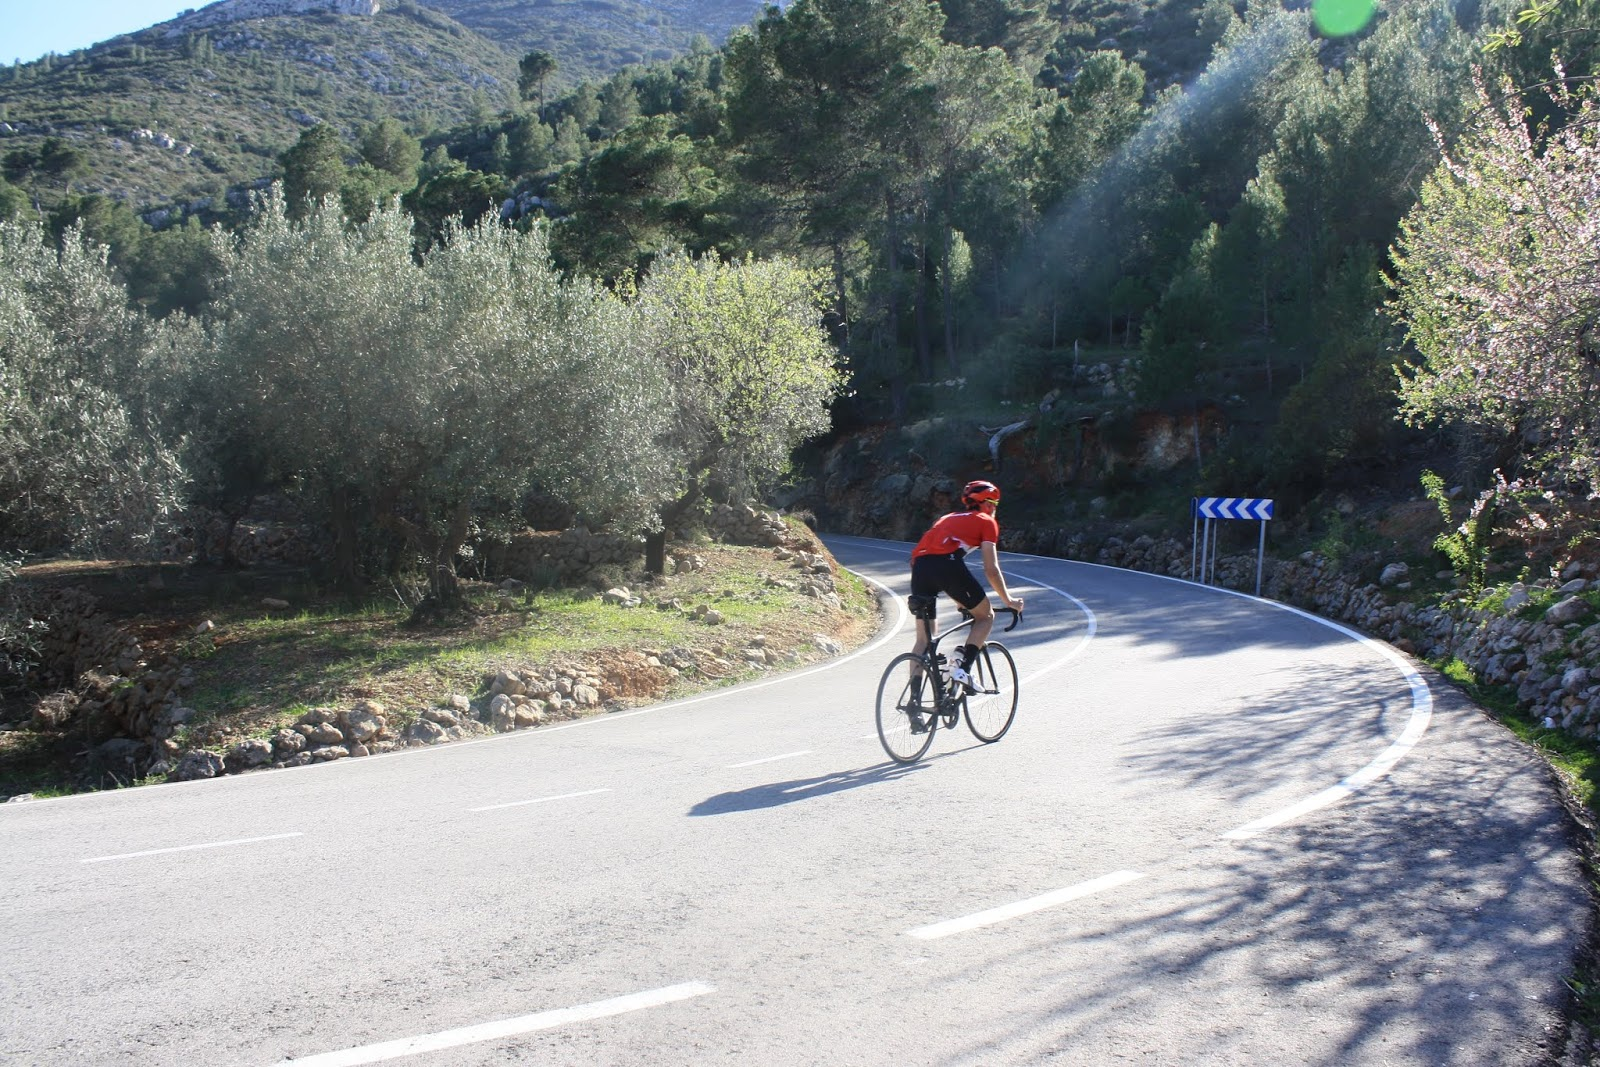 Penultimate hairpin bend on climb of Coll de Rates from Parcent